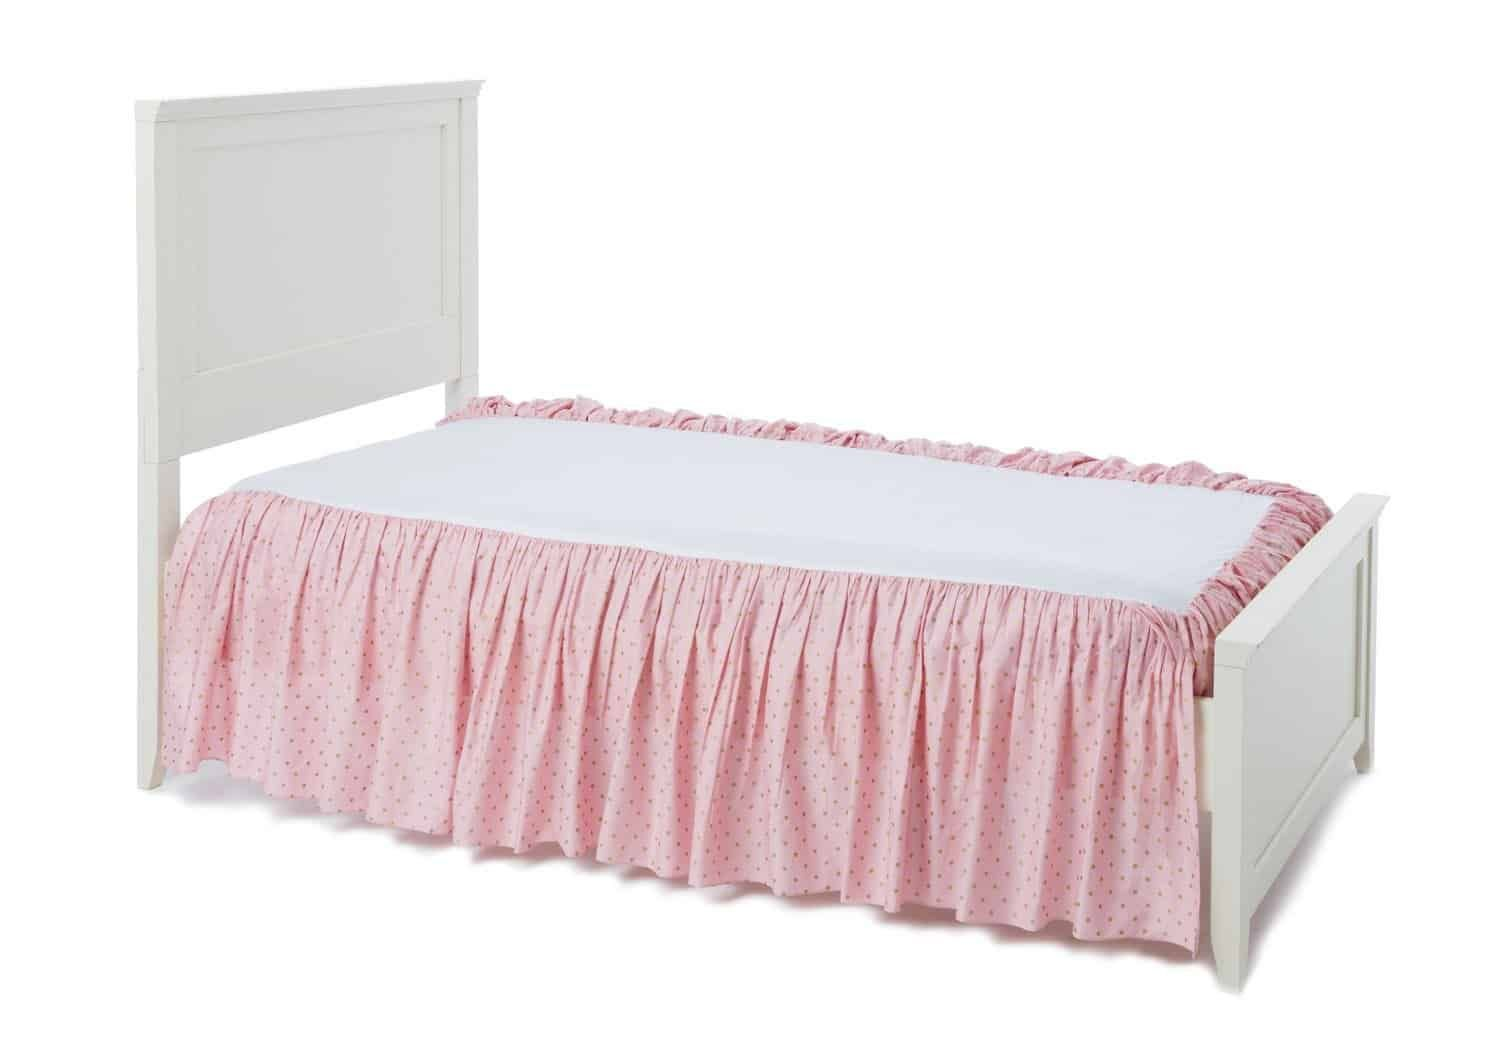 How To Make Bed Skirt For Low Profile Box Spring Gold Bed Bedskirt Bed